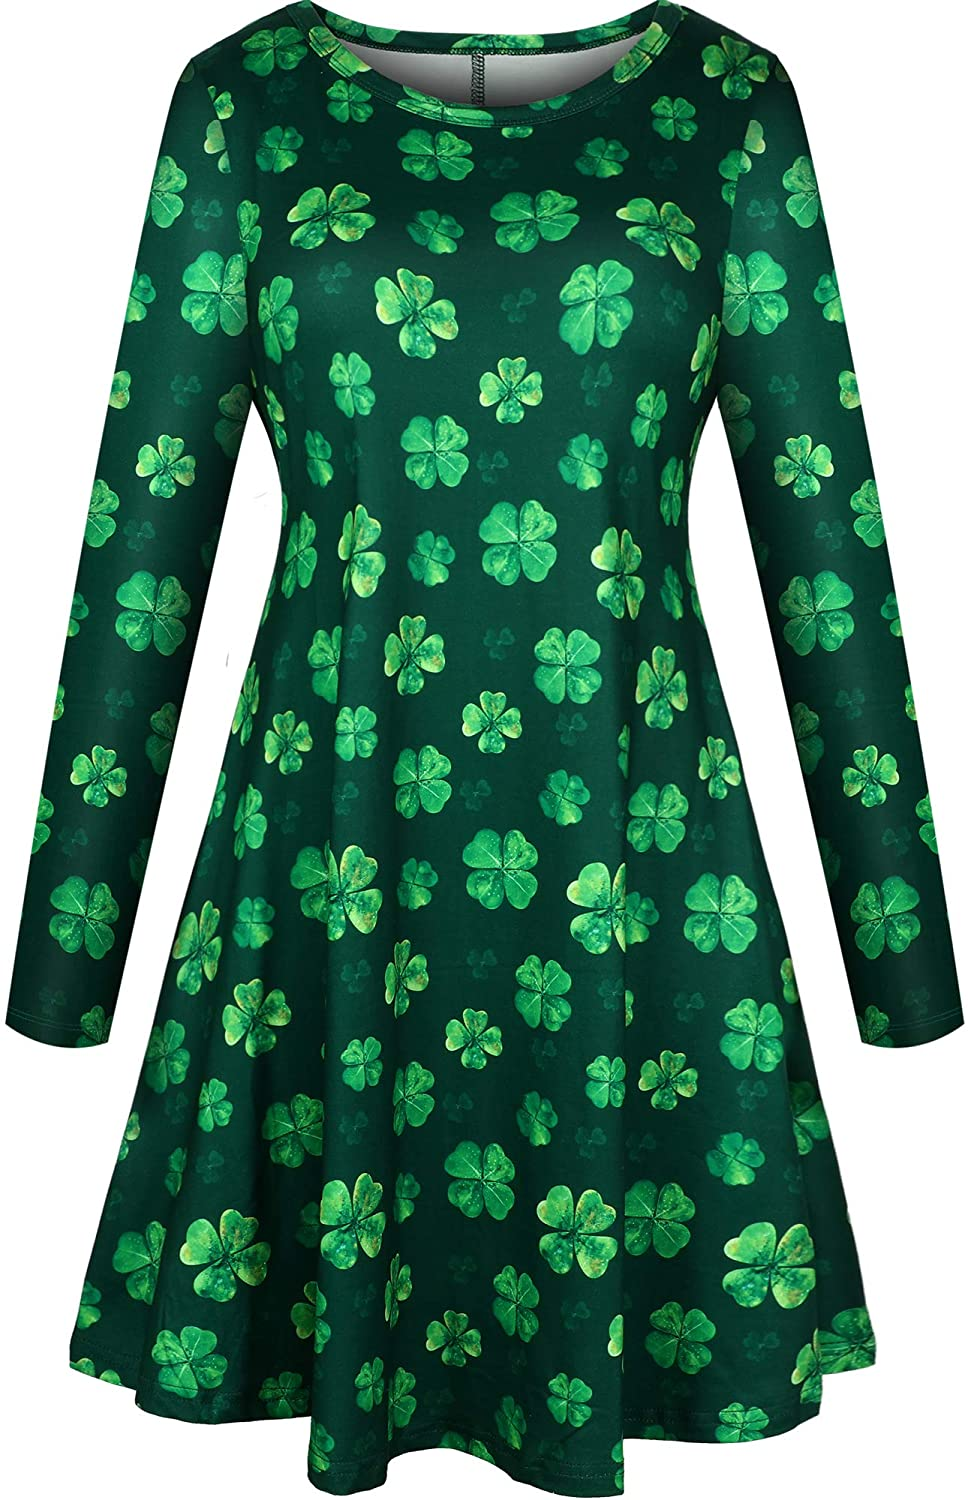 SATINIOR Womens St Patricks Print Dress Casual Shamrock Clover Long Sleeve Flared Tunic Dress (Green Four-Leaf Clover, M)